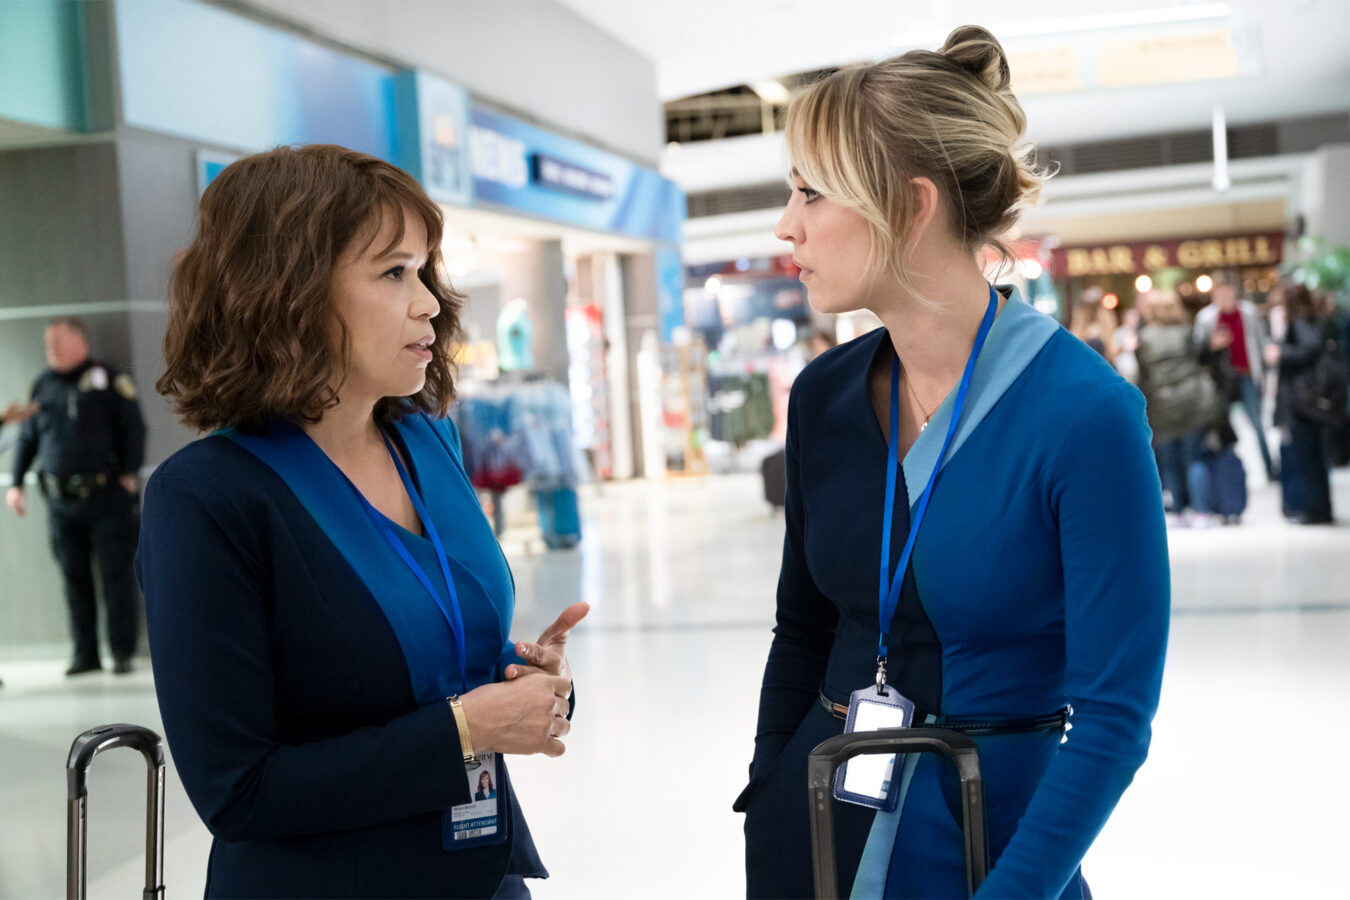 Rosie Perez and Kaley Cuoco in The Flight Attendant